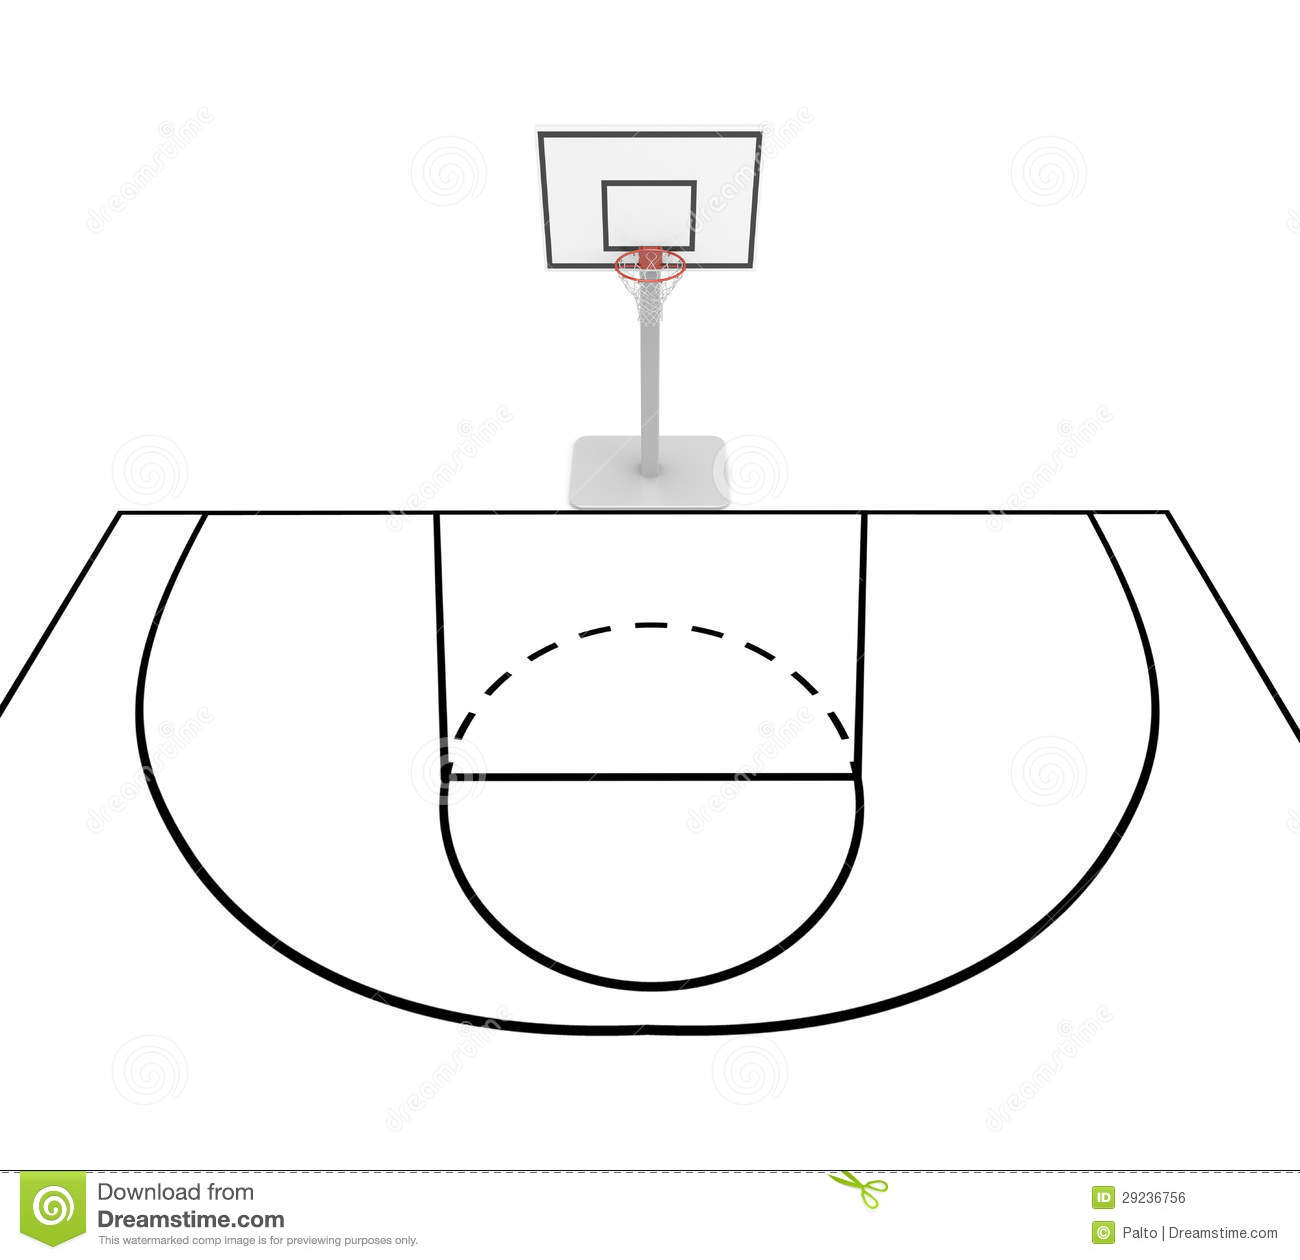 475 Basketball Court free clipart.